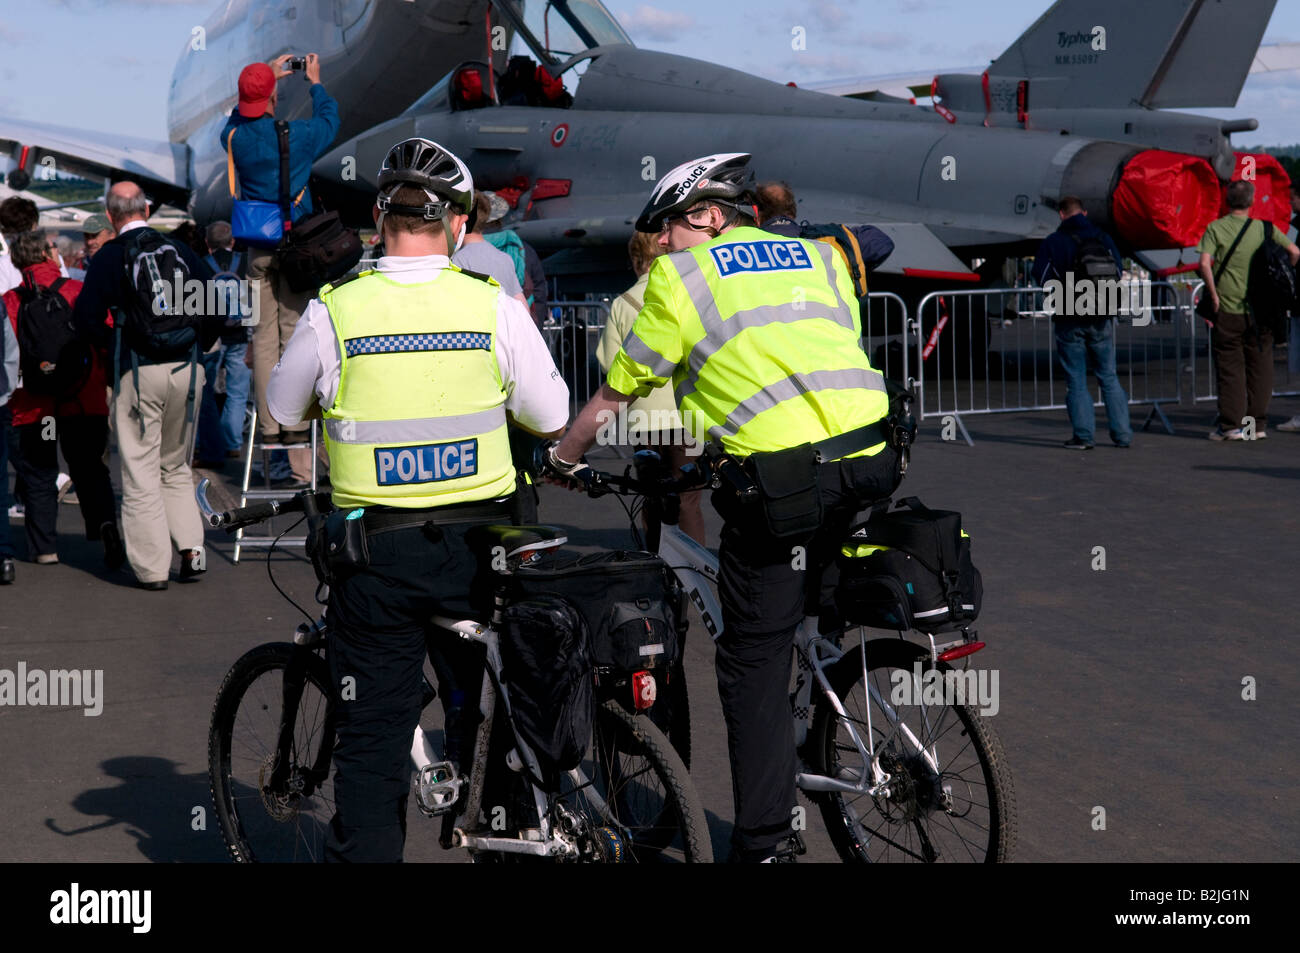 Two 2 police men on bycycles in yellow jackets sitting talking at a public event at the Farnborough air show close - Stock Image